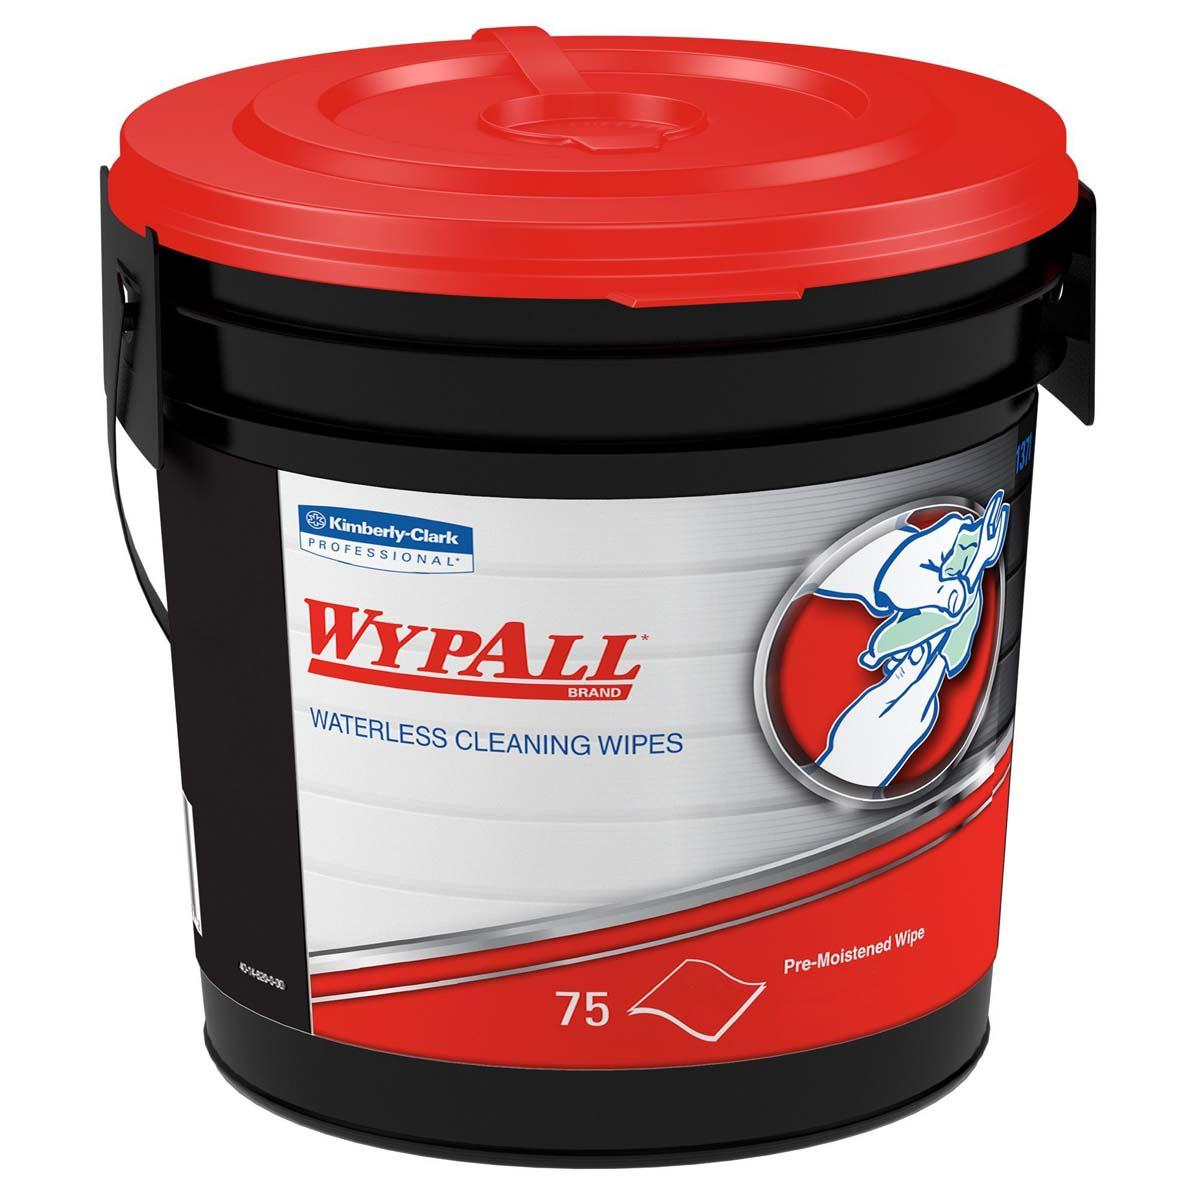 Wypall Waterless Industrial Cleaning Wipes (91371), Heavy Duty Moist Wipers, 6 Containers / Case, 75 Sheets / Container